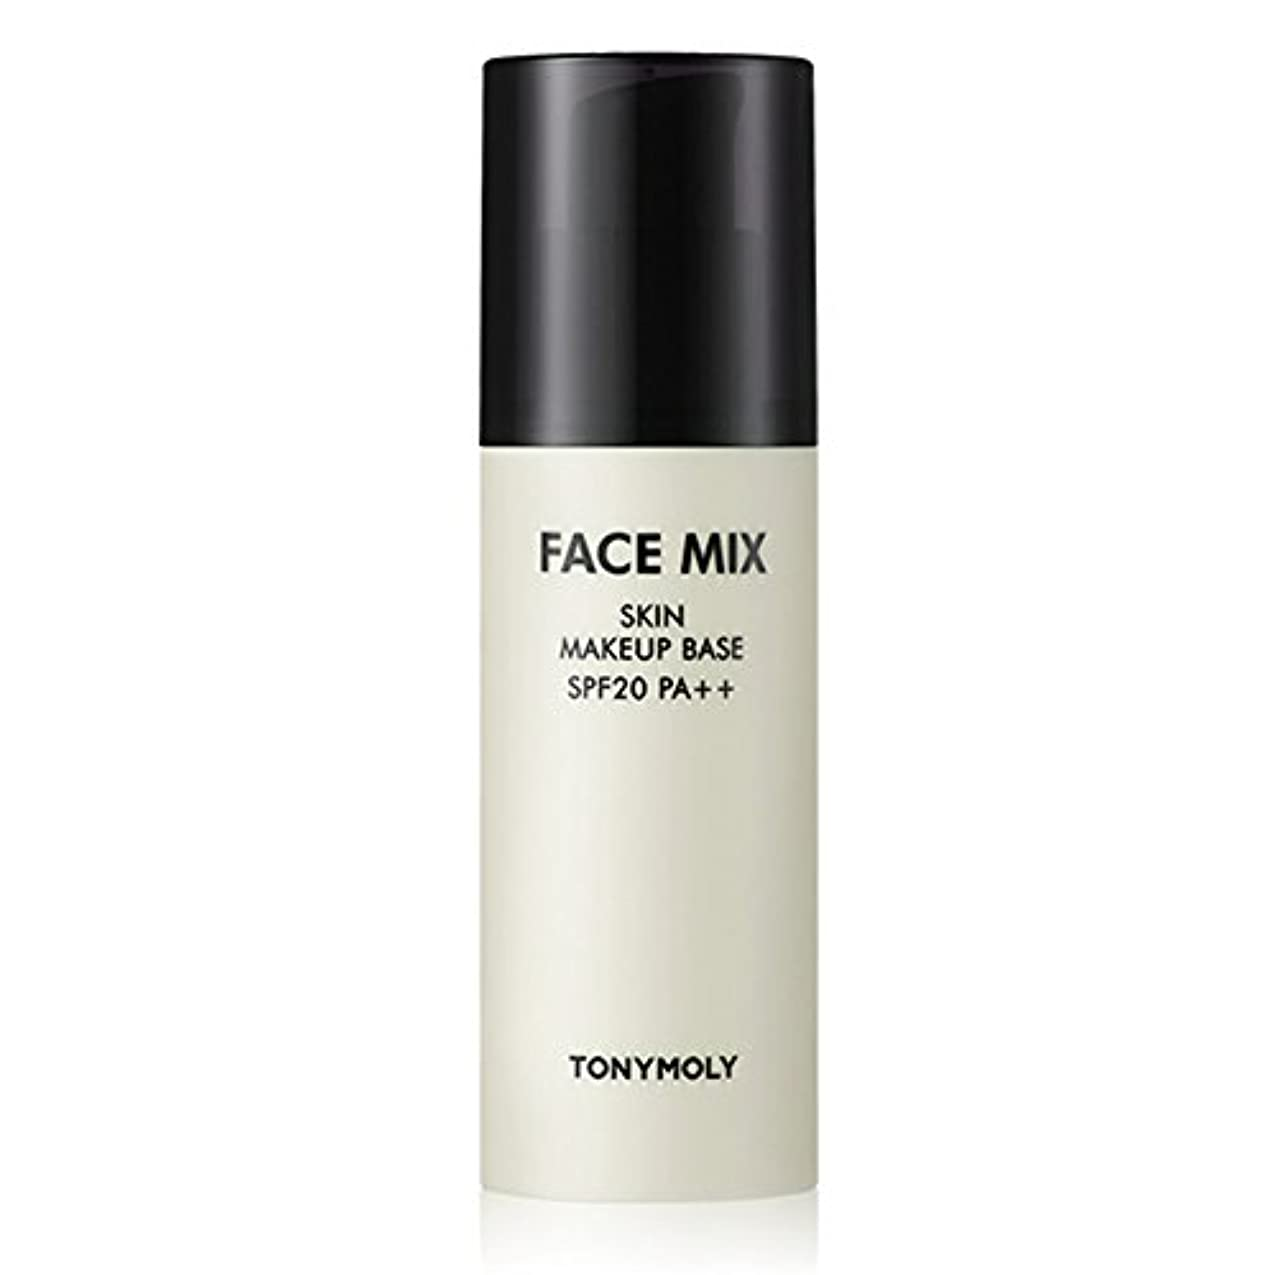 蒸留小石宇宙飛行士TONYMOLY FACE MIX SKIN MAKEUP BASE 02 MIX LAVENDER SPF20 PA+++ 30g